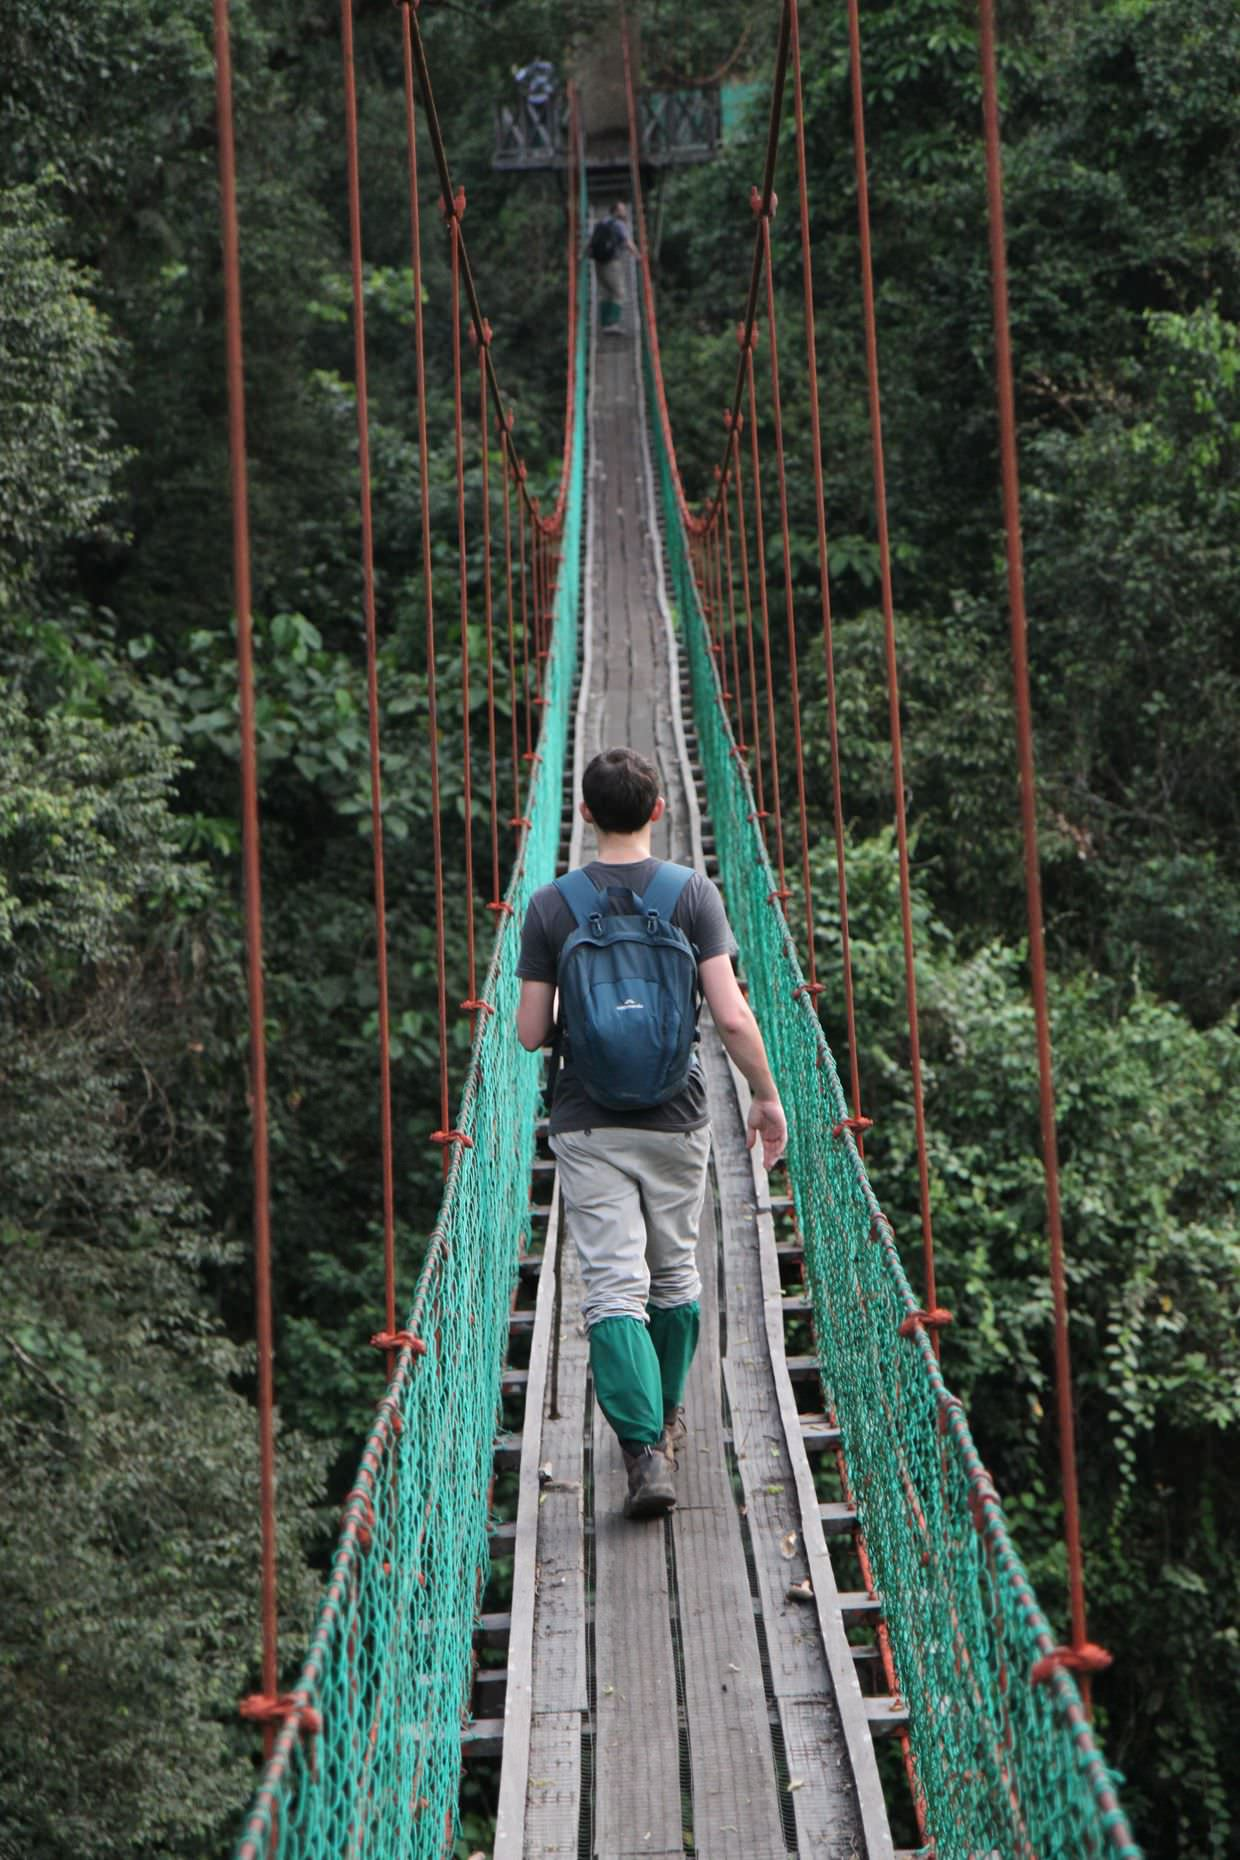 Crossing a high bridge, jungle trekking in a t-shirt